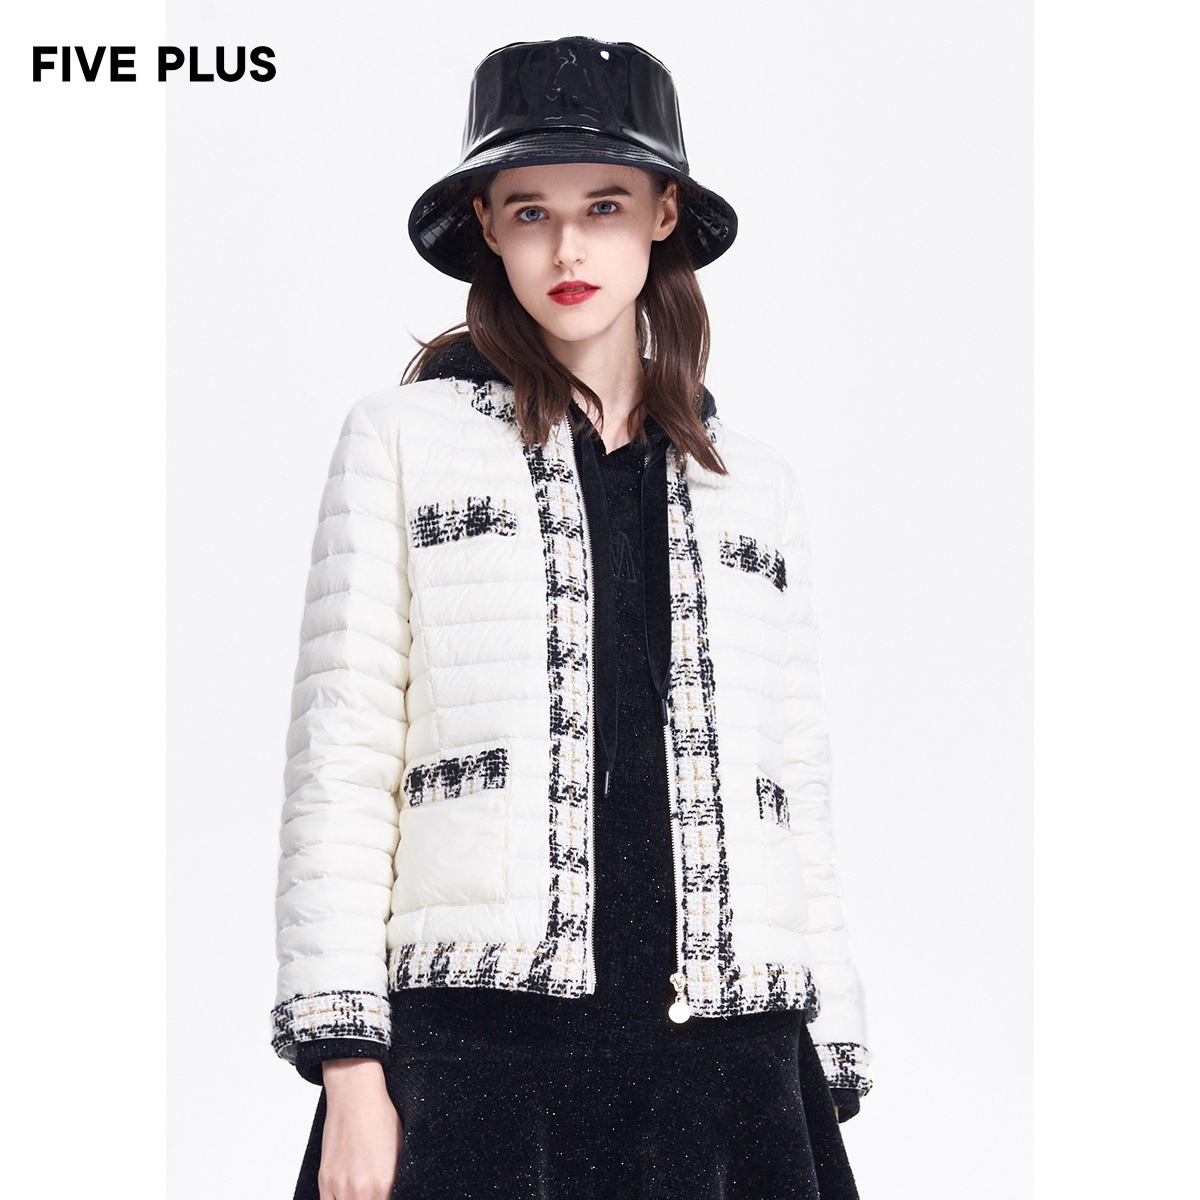 FIVE PLUS new female winter long-sleeved short down jacket jacket female stitching plaid jacket thin style